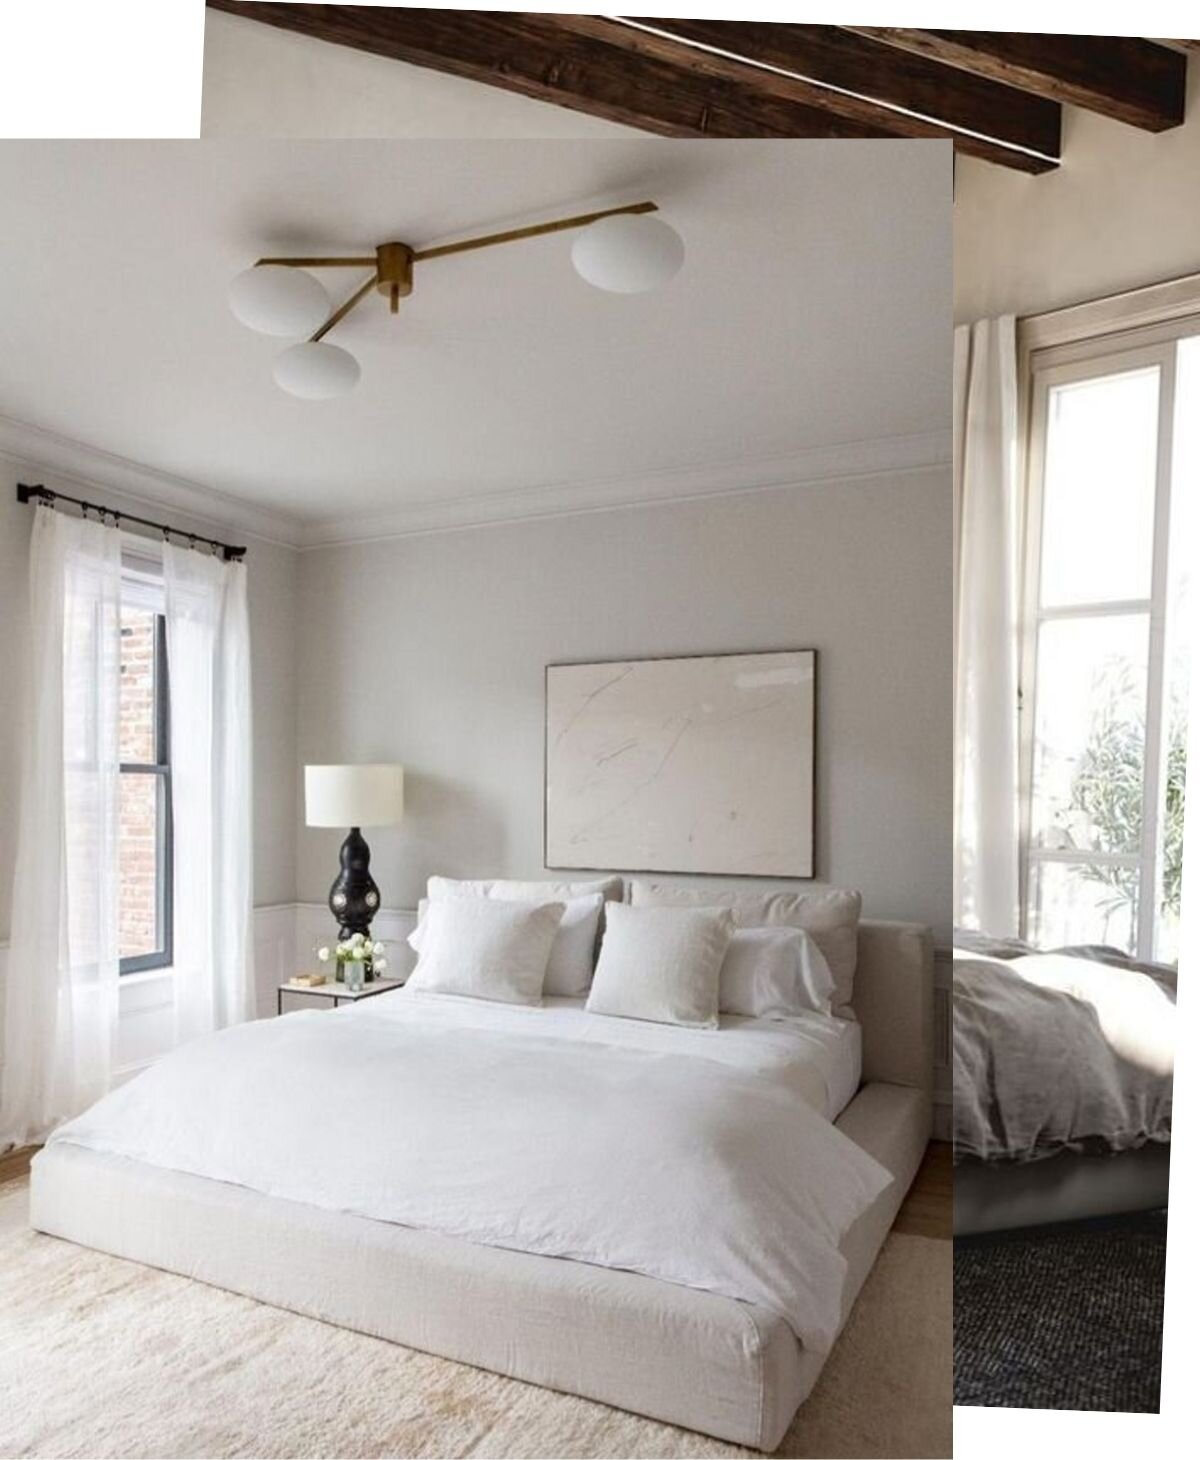 Five Bedrooms to calm you down - Monochromatic bedrooms proven to clear your mind and make you fall into a deep sleep.